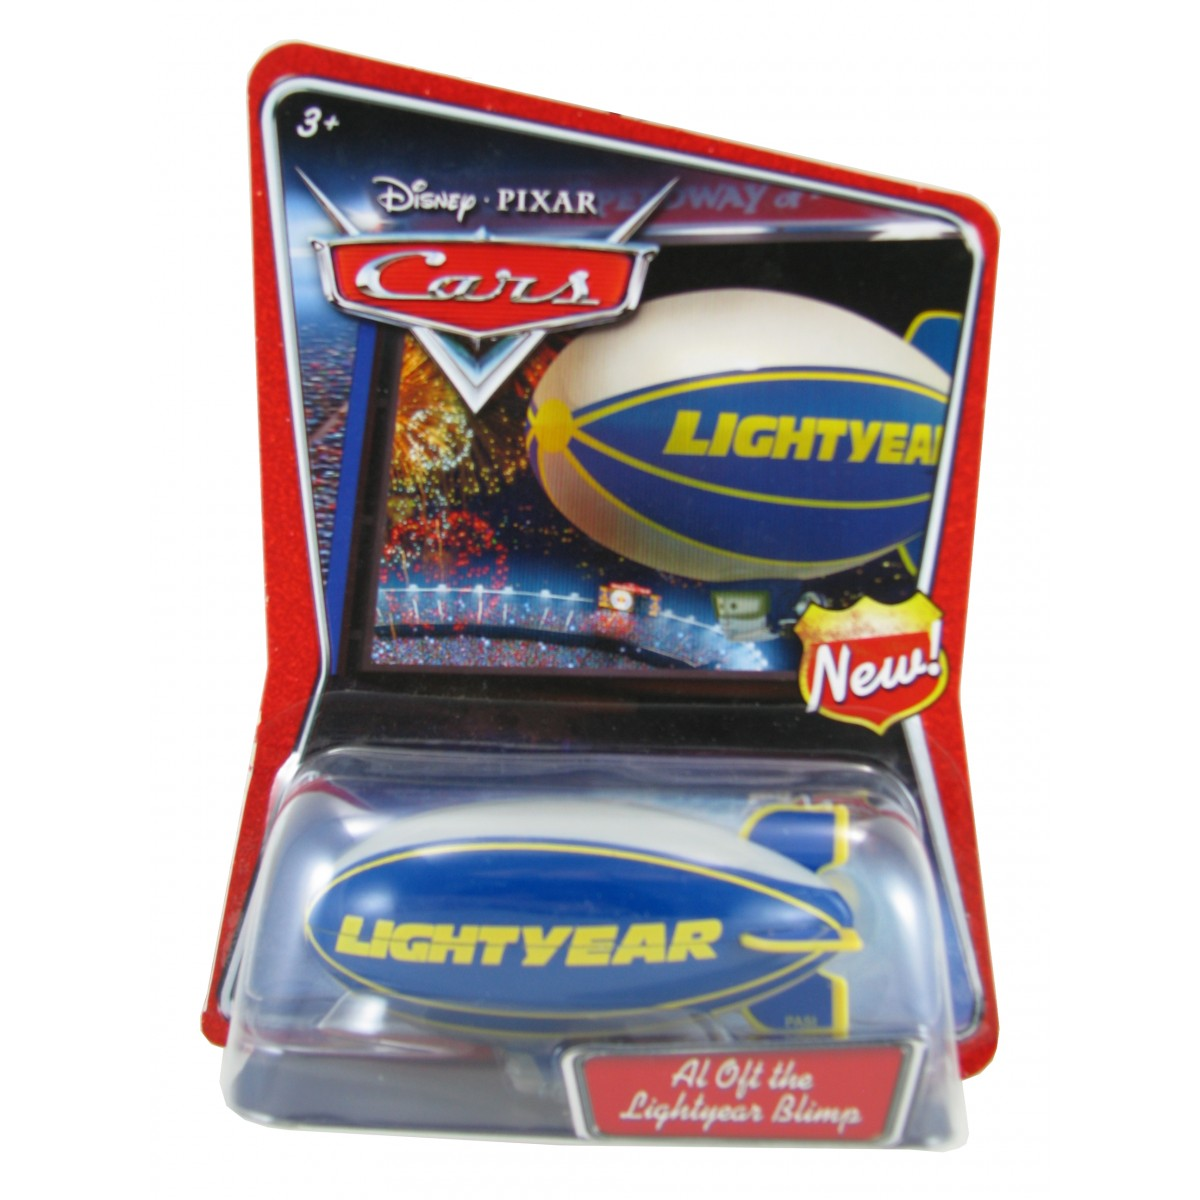 Disney Pixar - Cars - All of the Lightyear Blimp  - Hobby Lobby CollectorStore